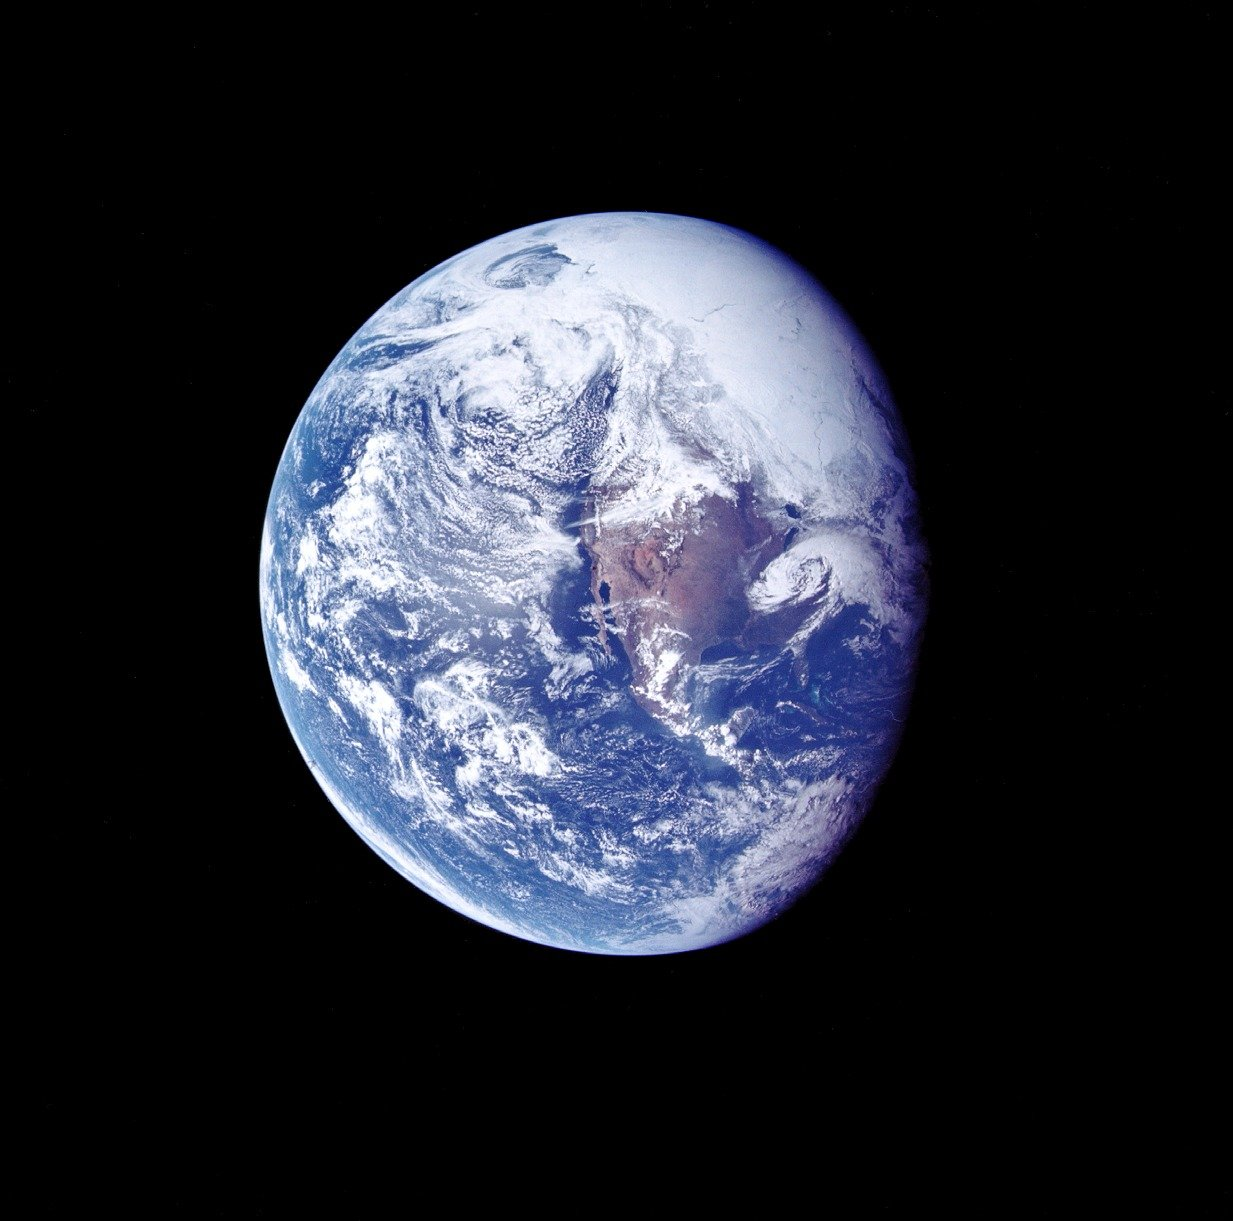 earth view from other planets - photo #11